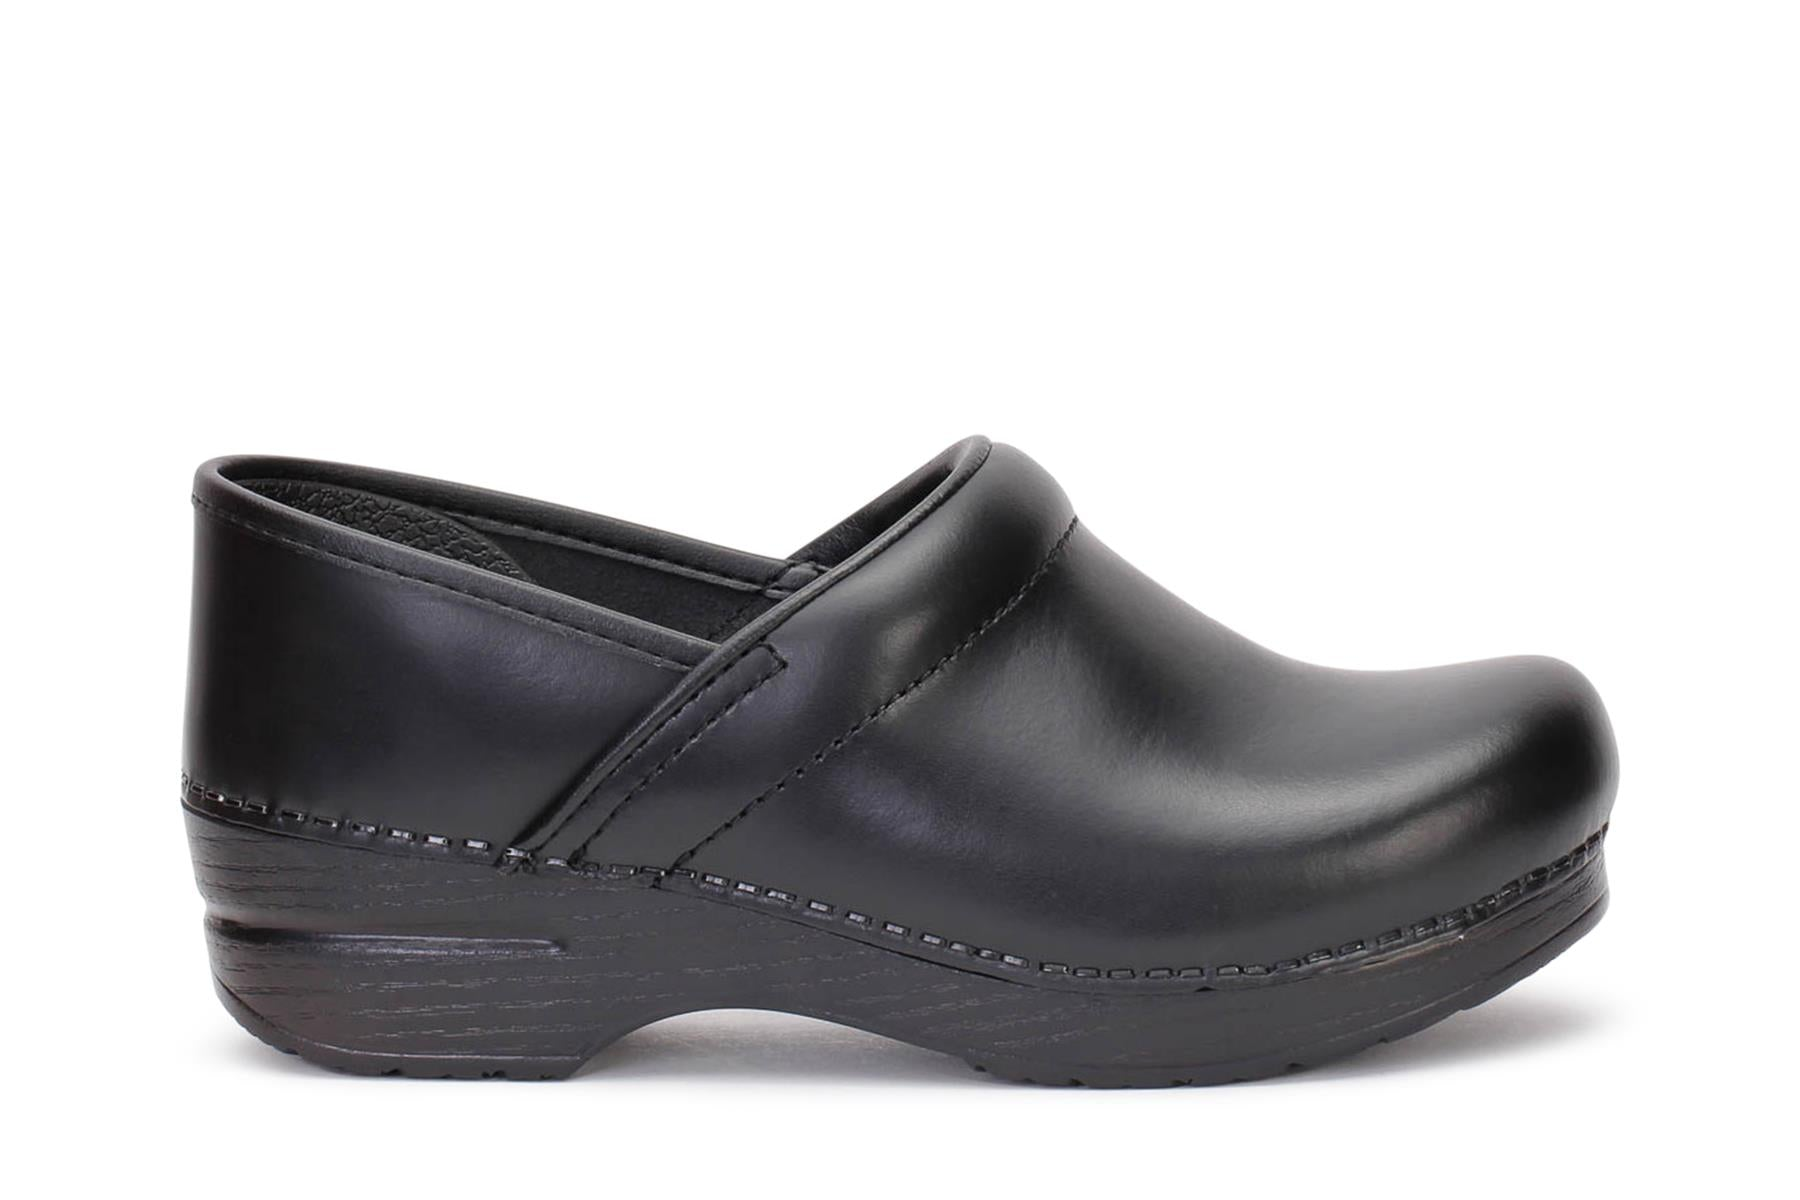 dansko-womens-clog-shoes-wide-pro-cabrio-black-leather-899020202-main